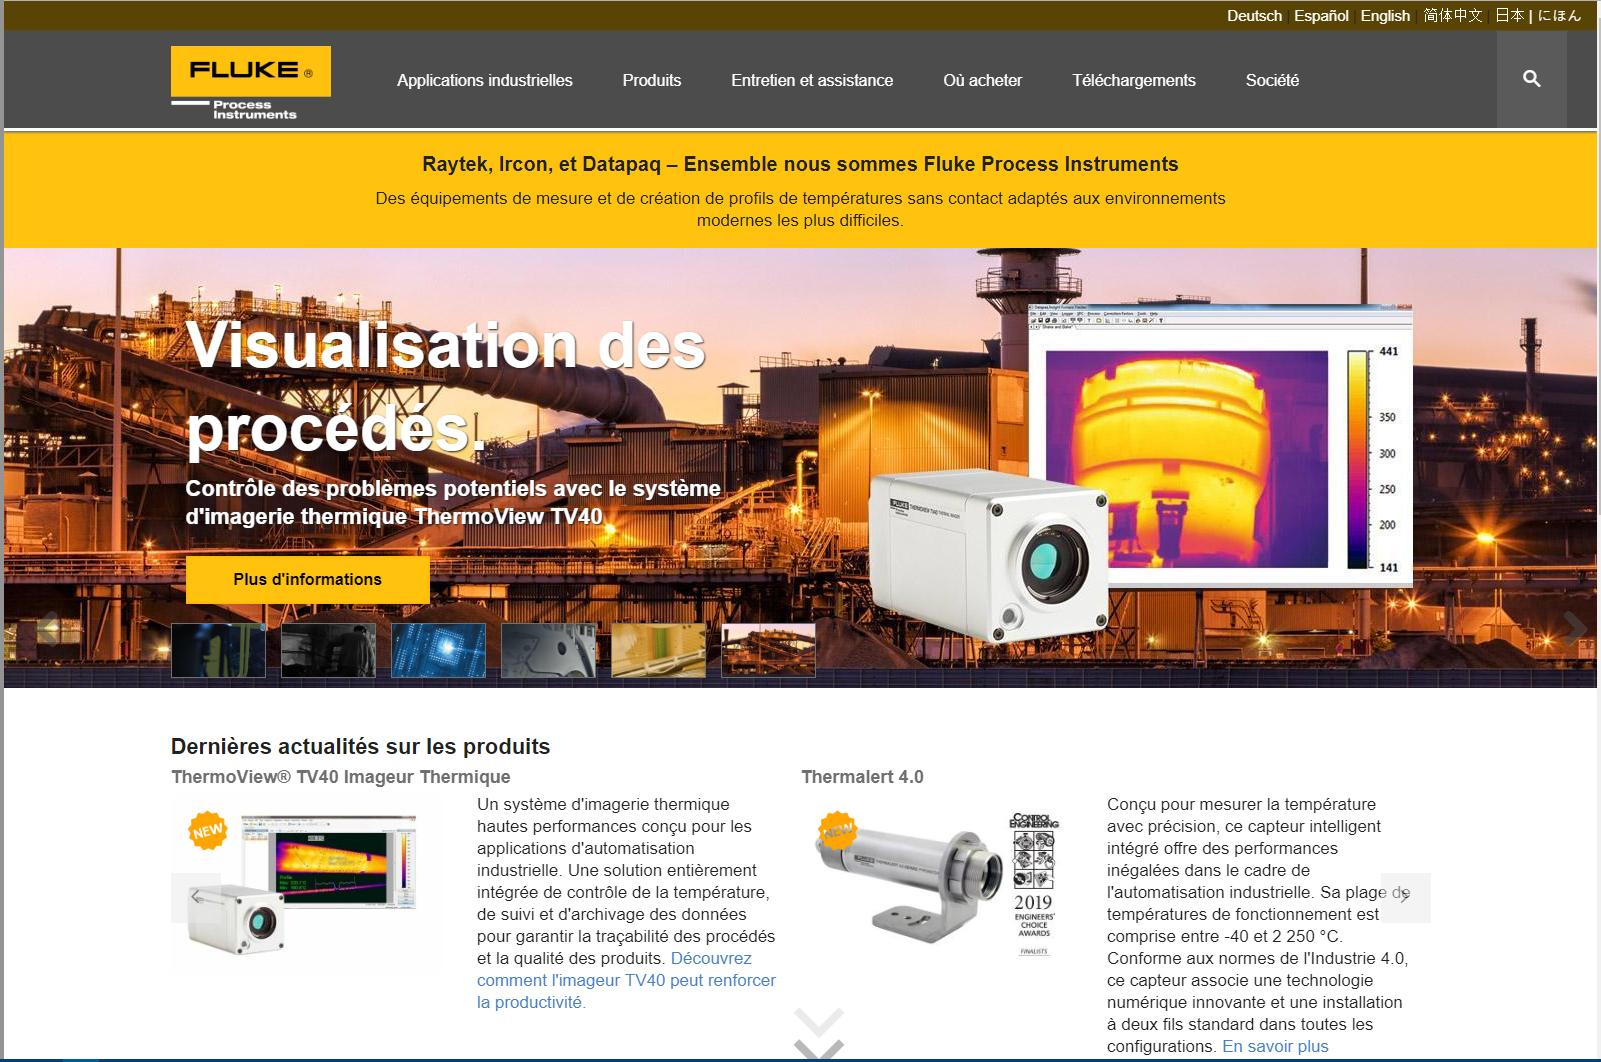 Fluke Process Instruments debuts Spanish- and French-language websites